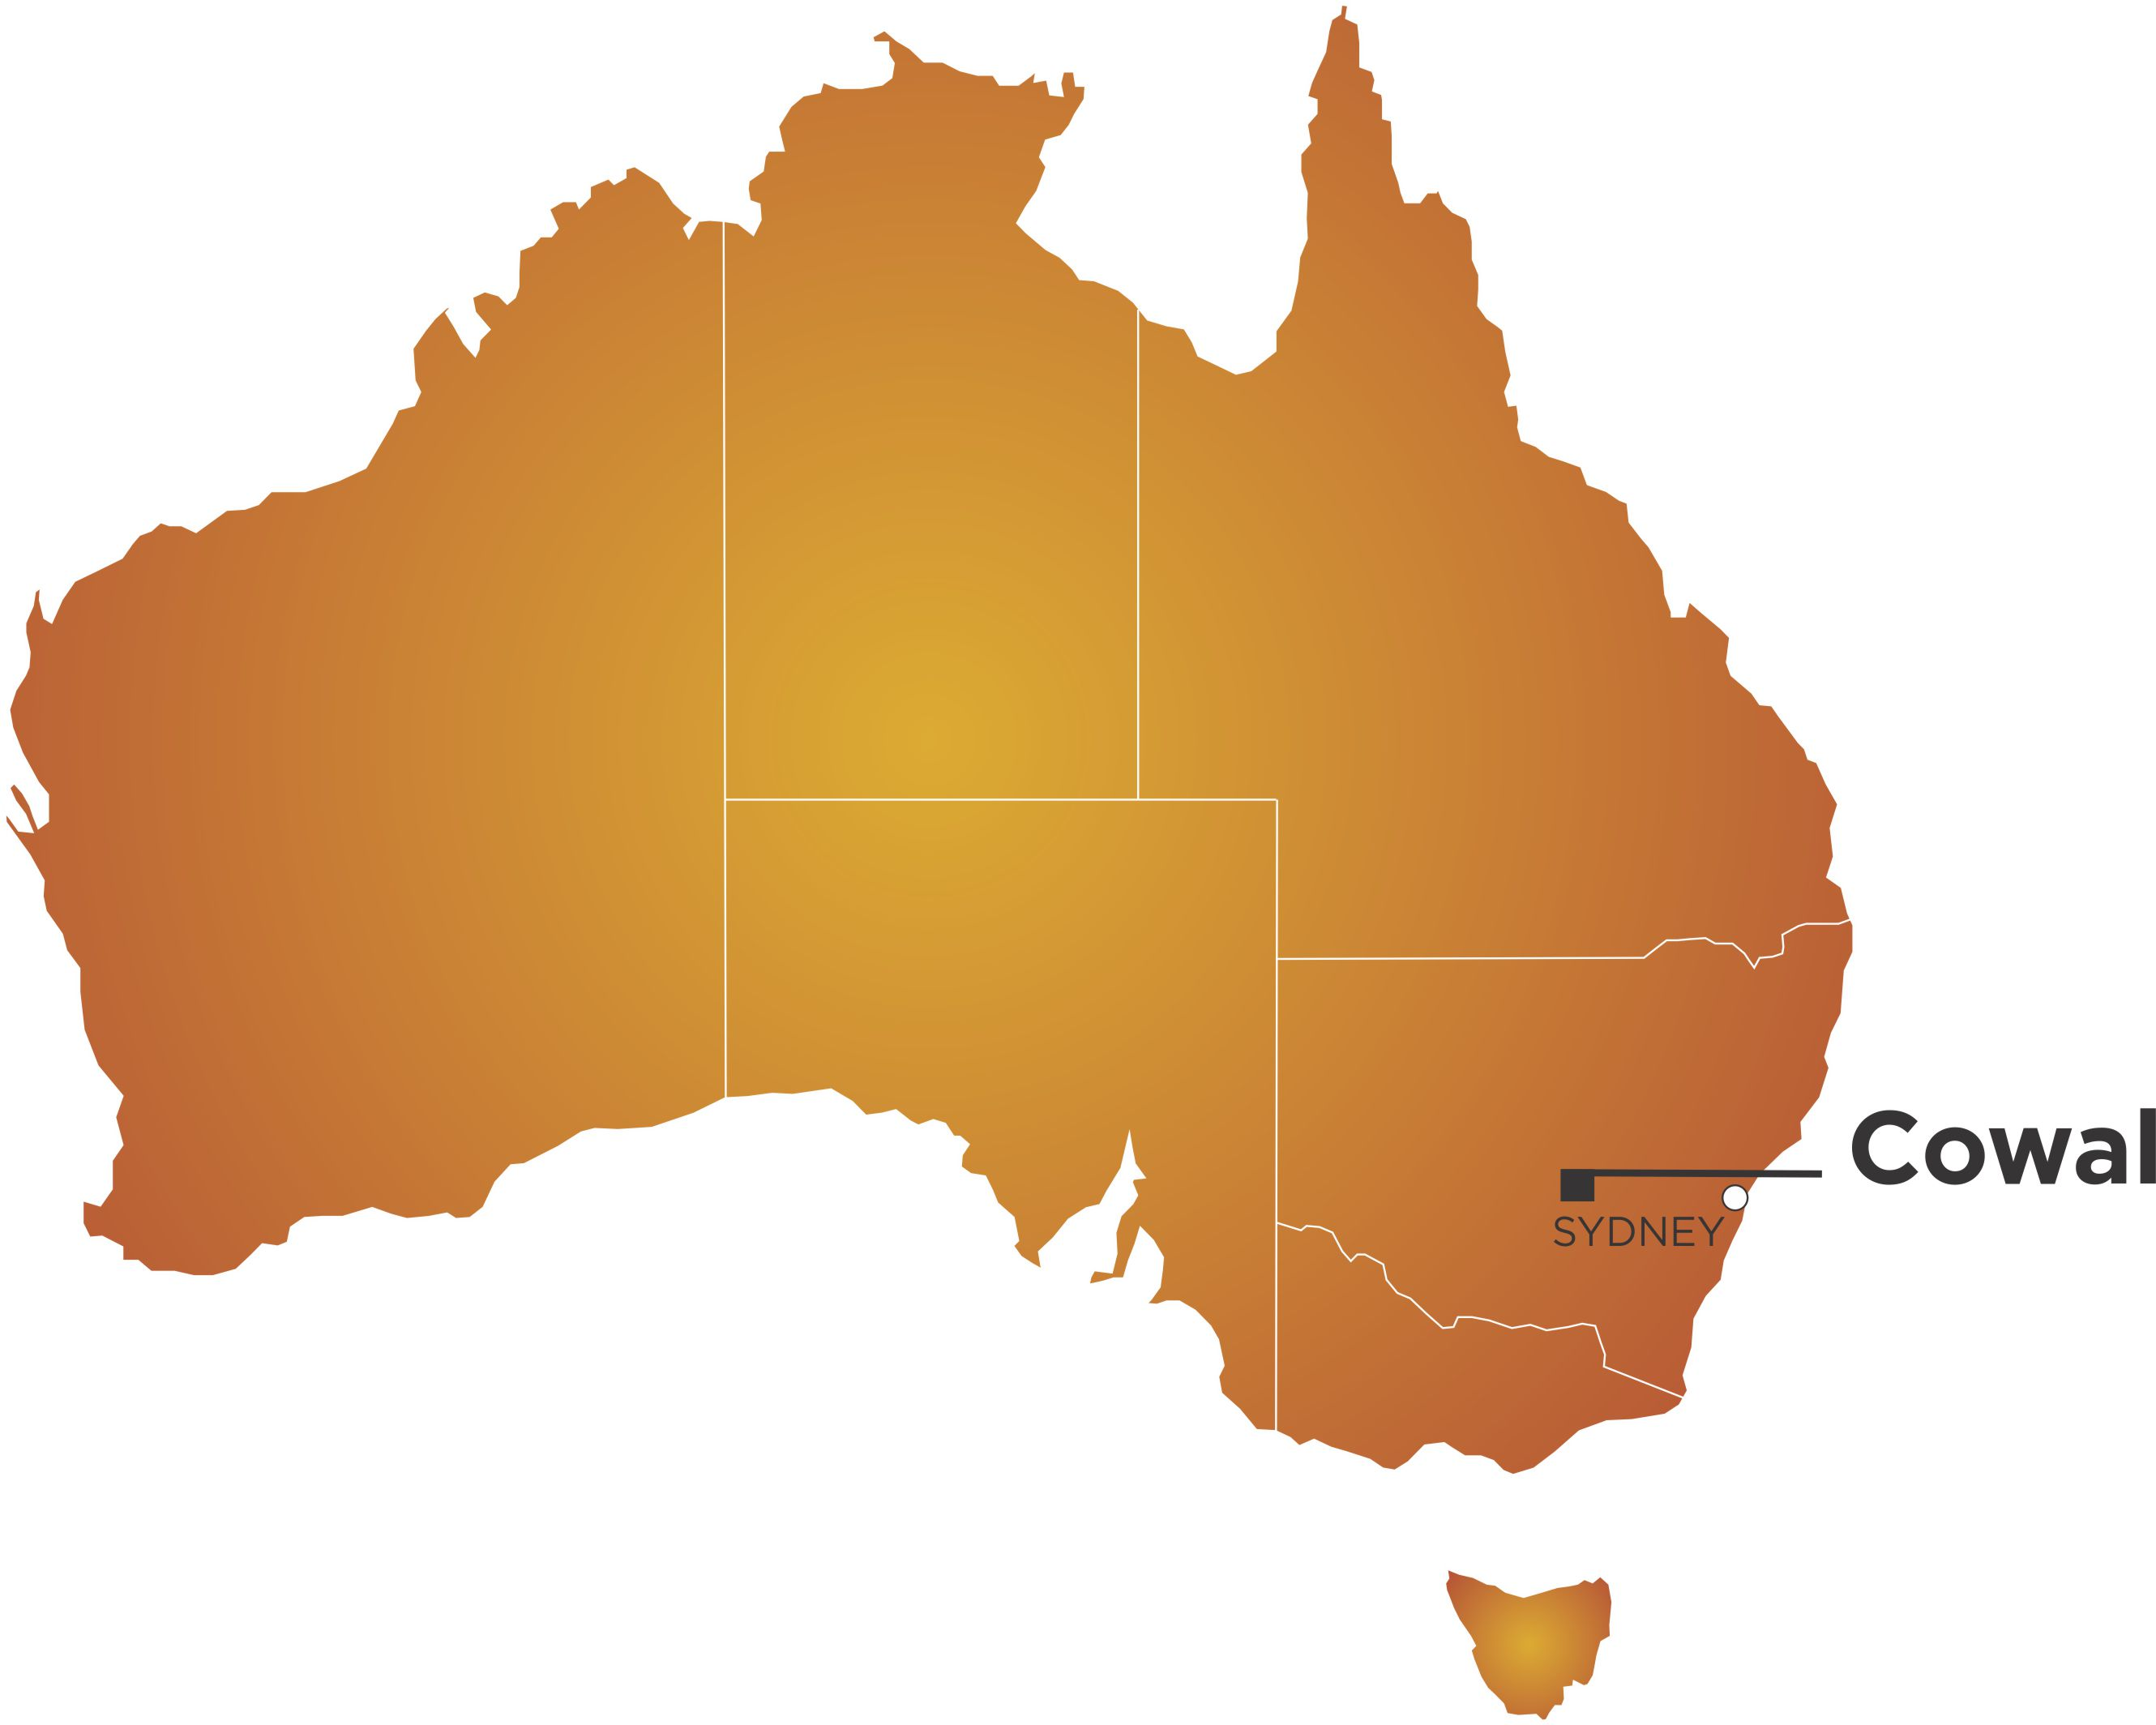 Evolution Mining announces increased resources and reserves at recently acquired Cowal mine in NSW